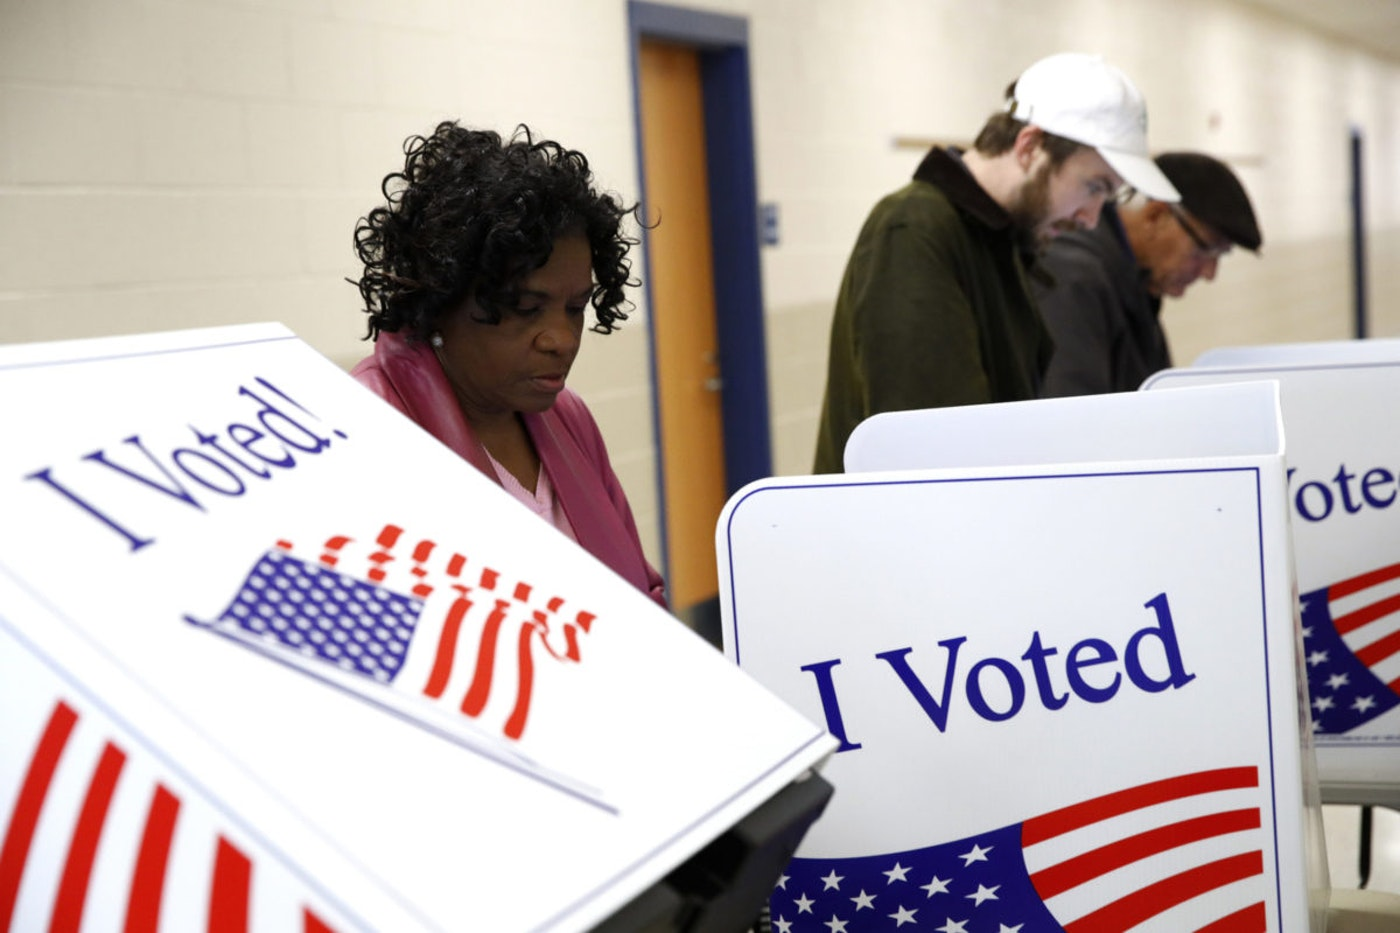 Voters fill out their ballots at a primary polling place, Saturday, Feb. 29, 2020. (AP Photo/Patrick Semansky)